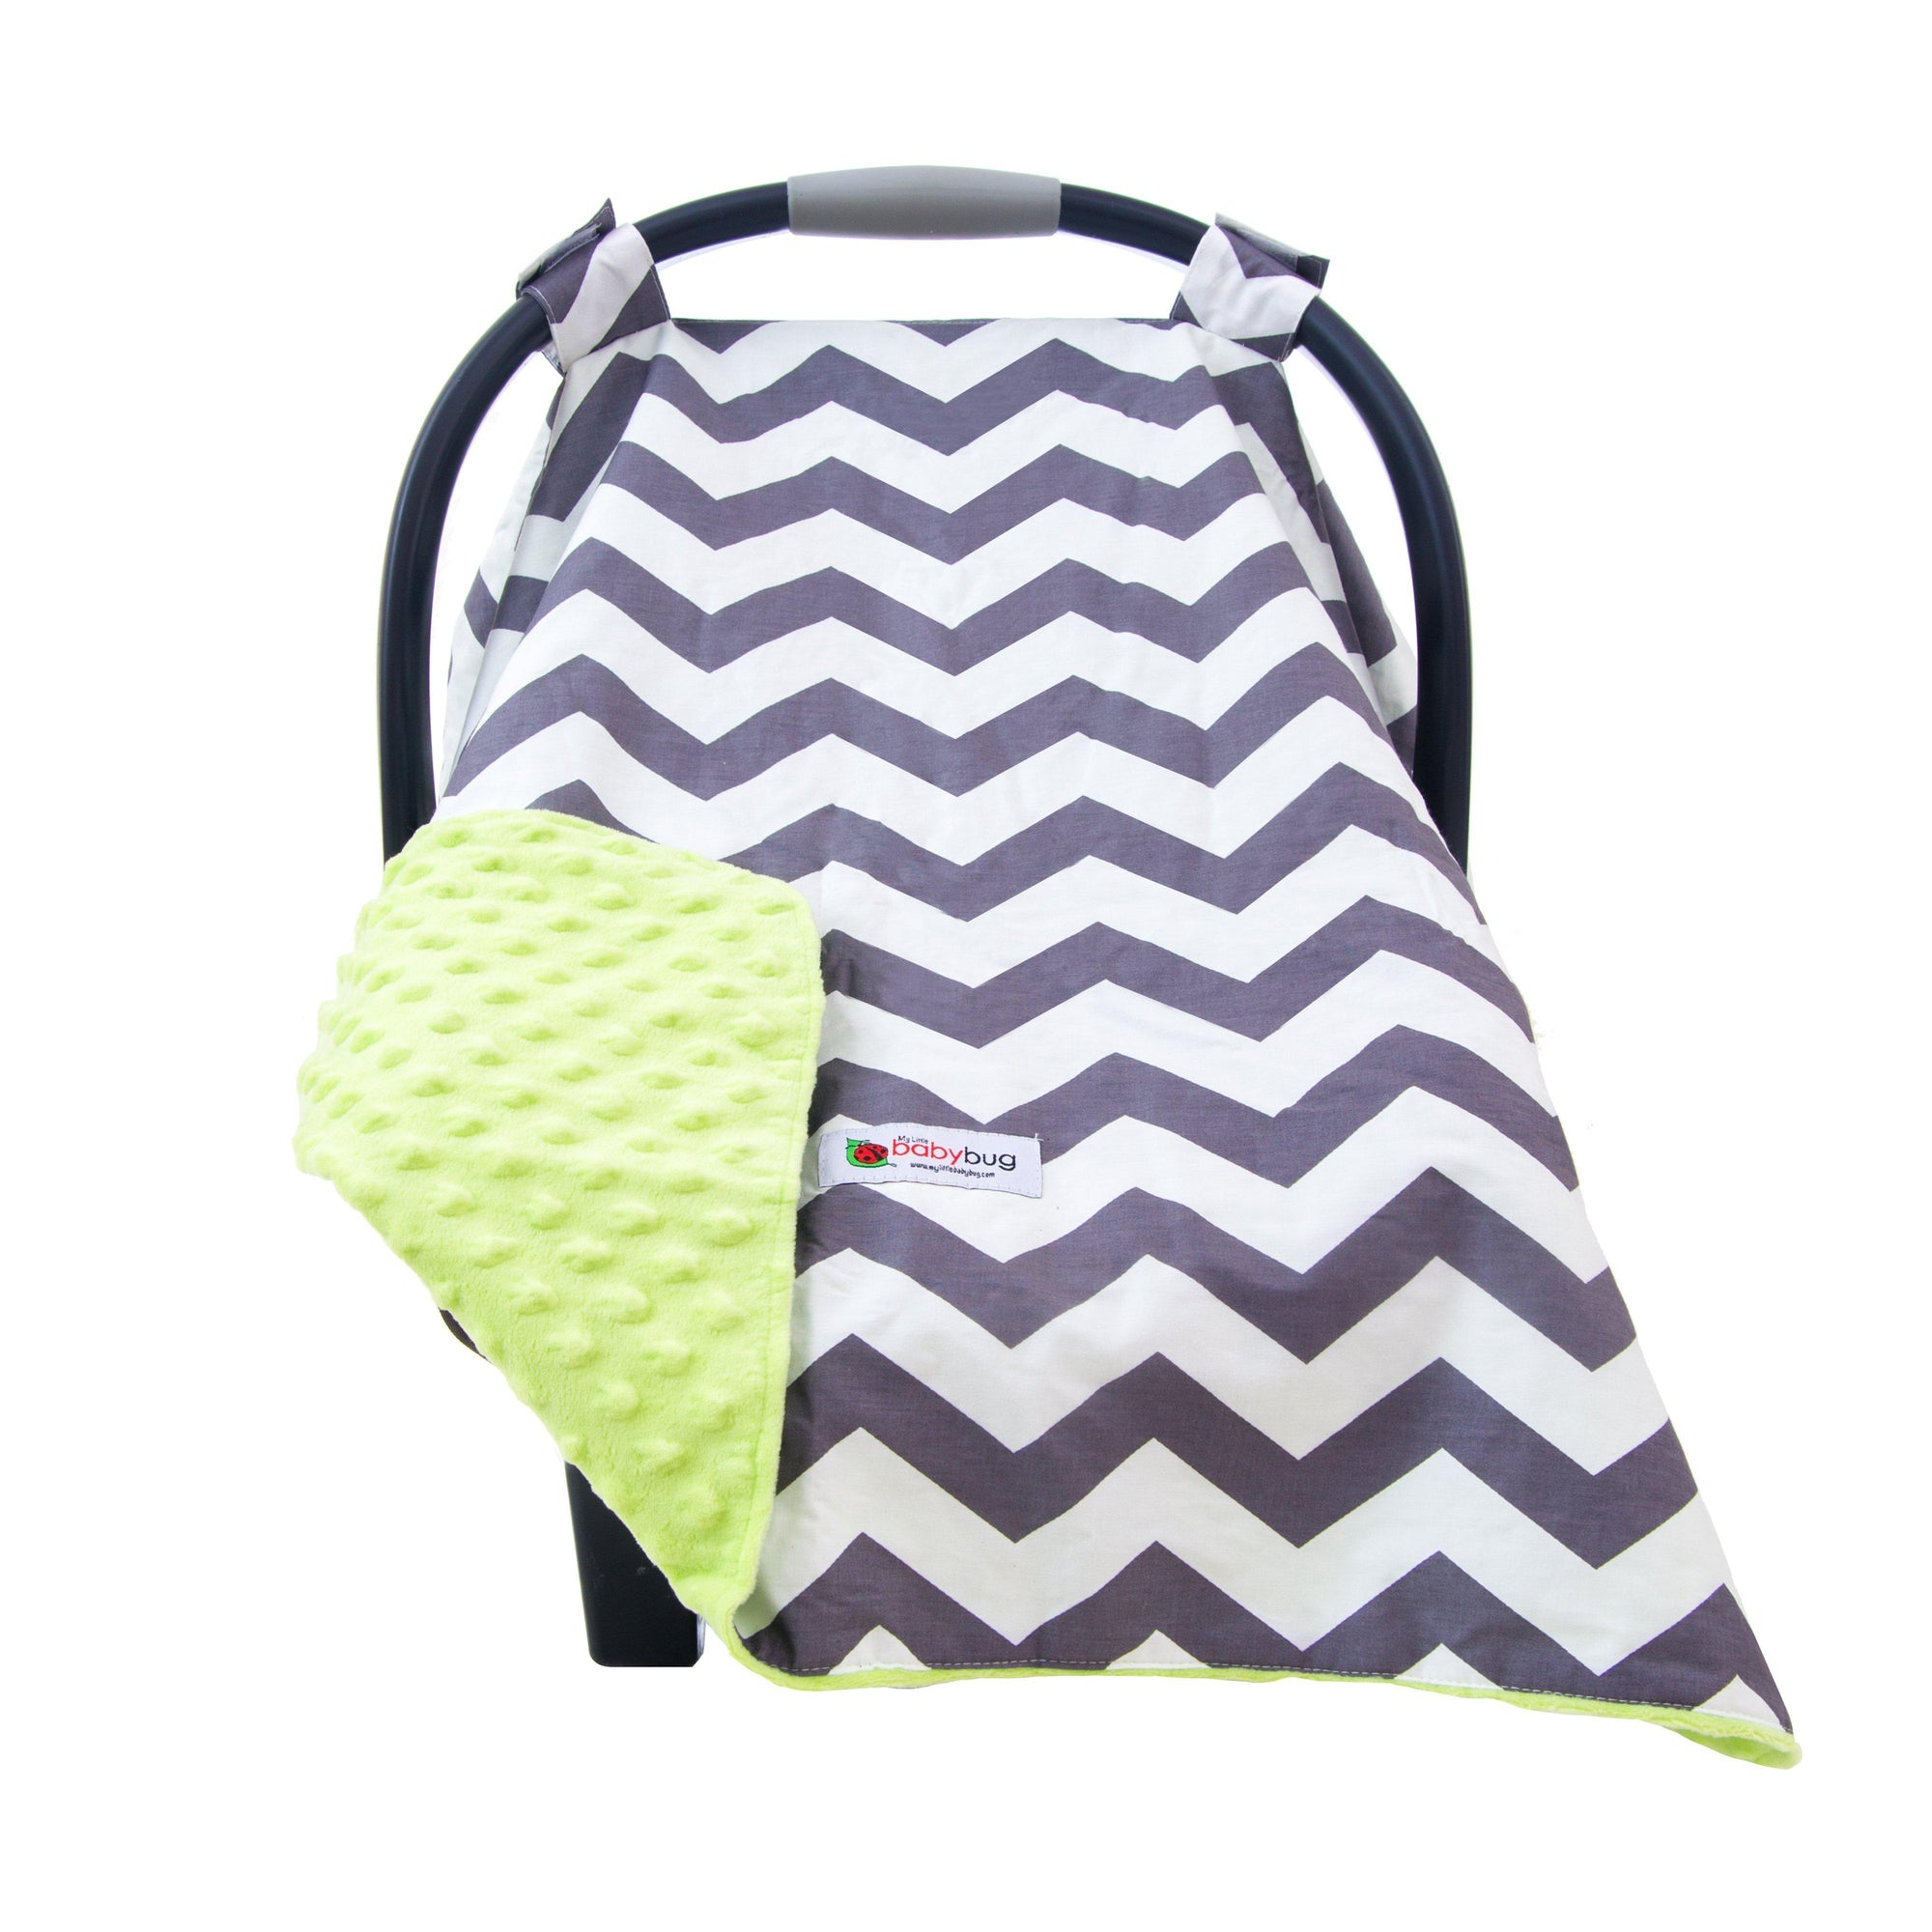 Andrew Car Seat Canopy Cover by My Little Baby Bug | www.mylittlebabybug.com